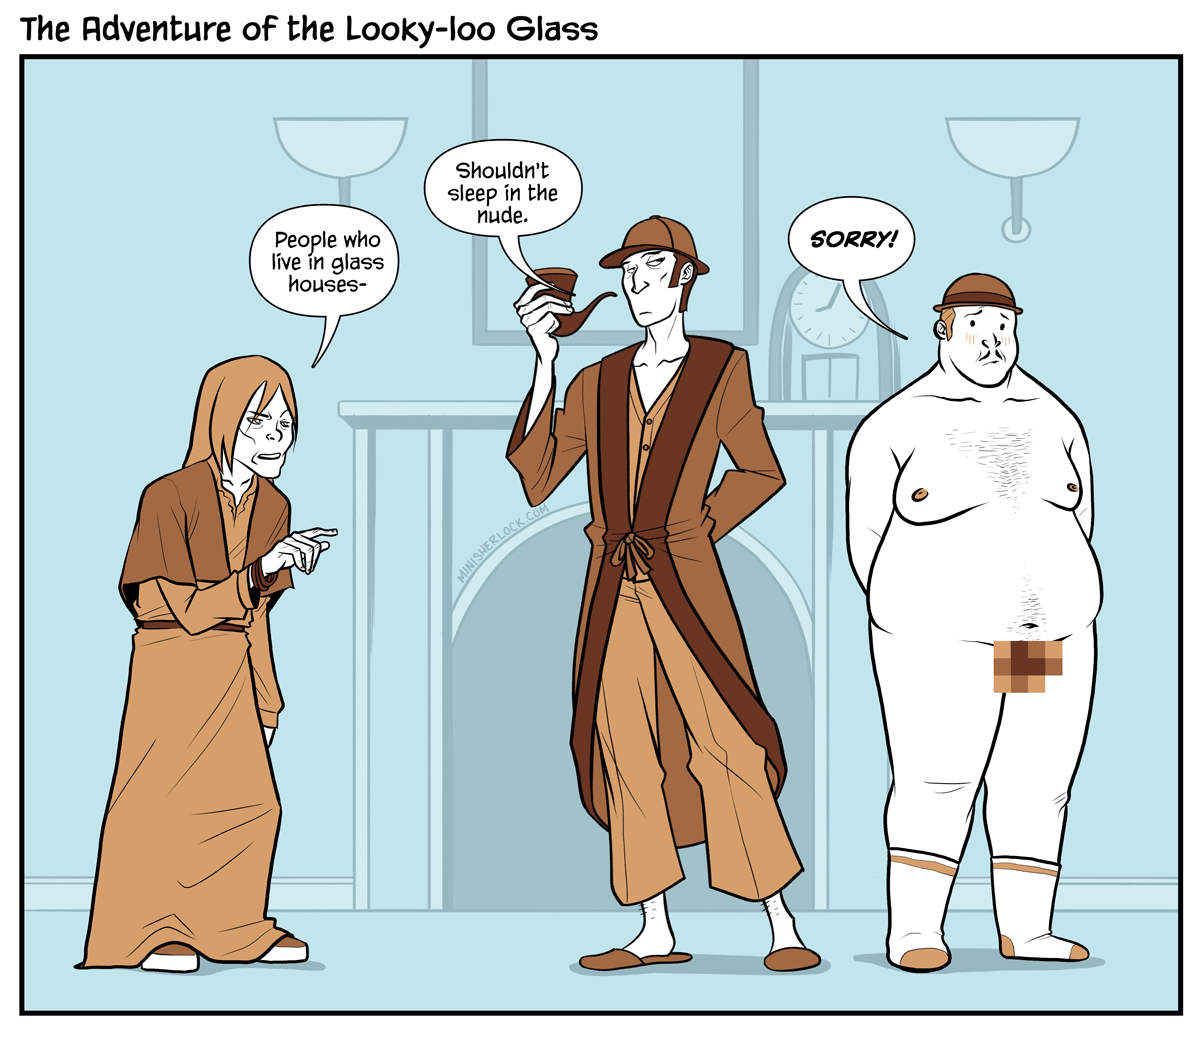 The Adventure of the Looky-Loo Glass